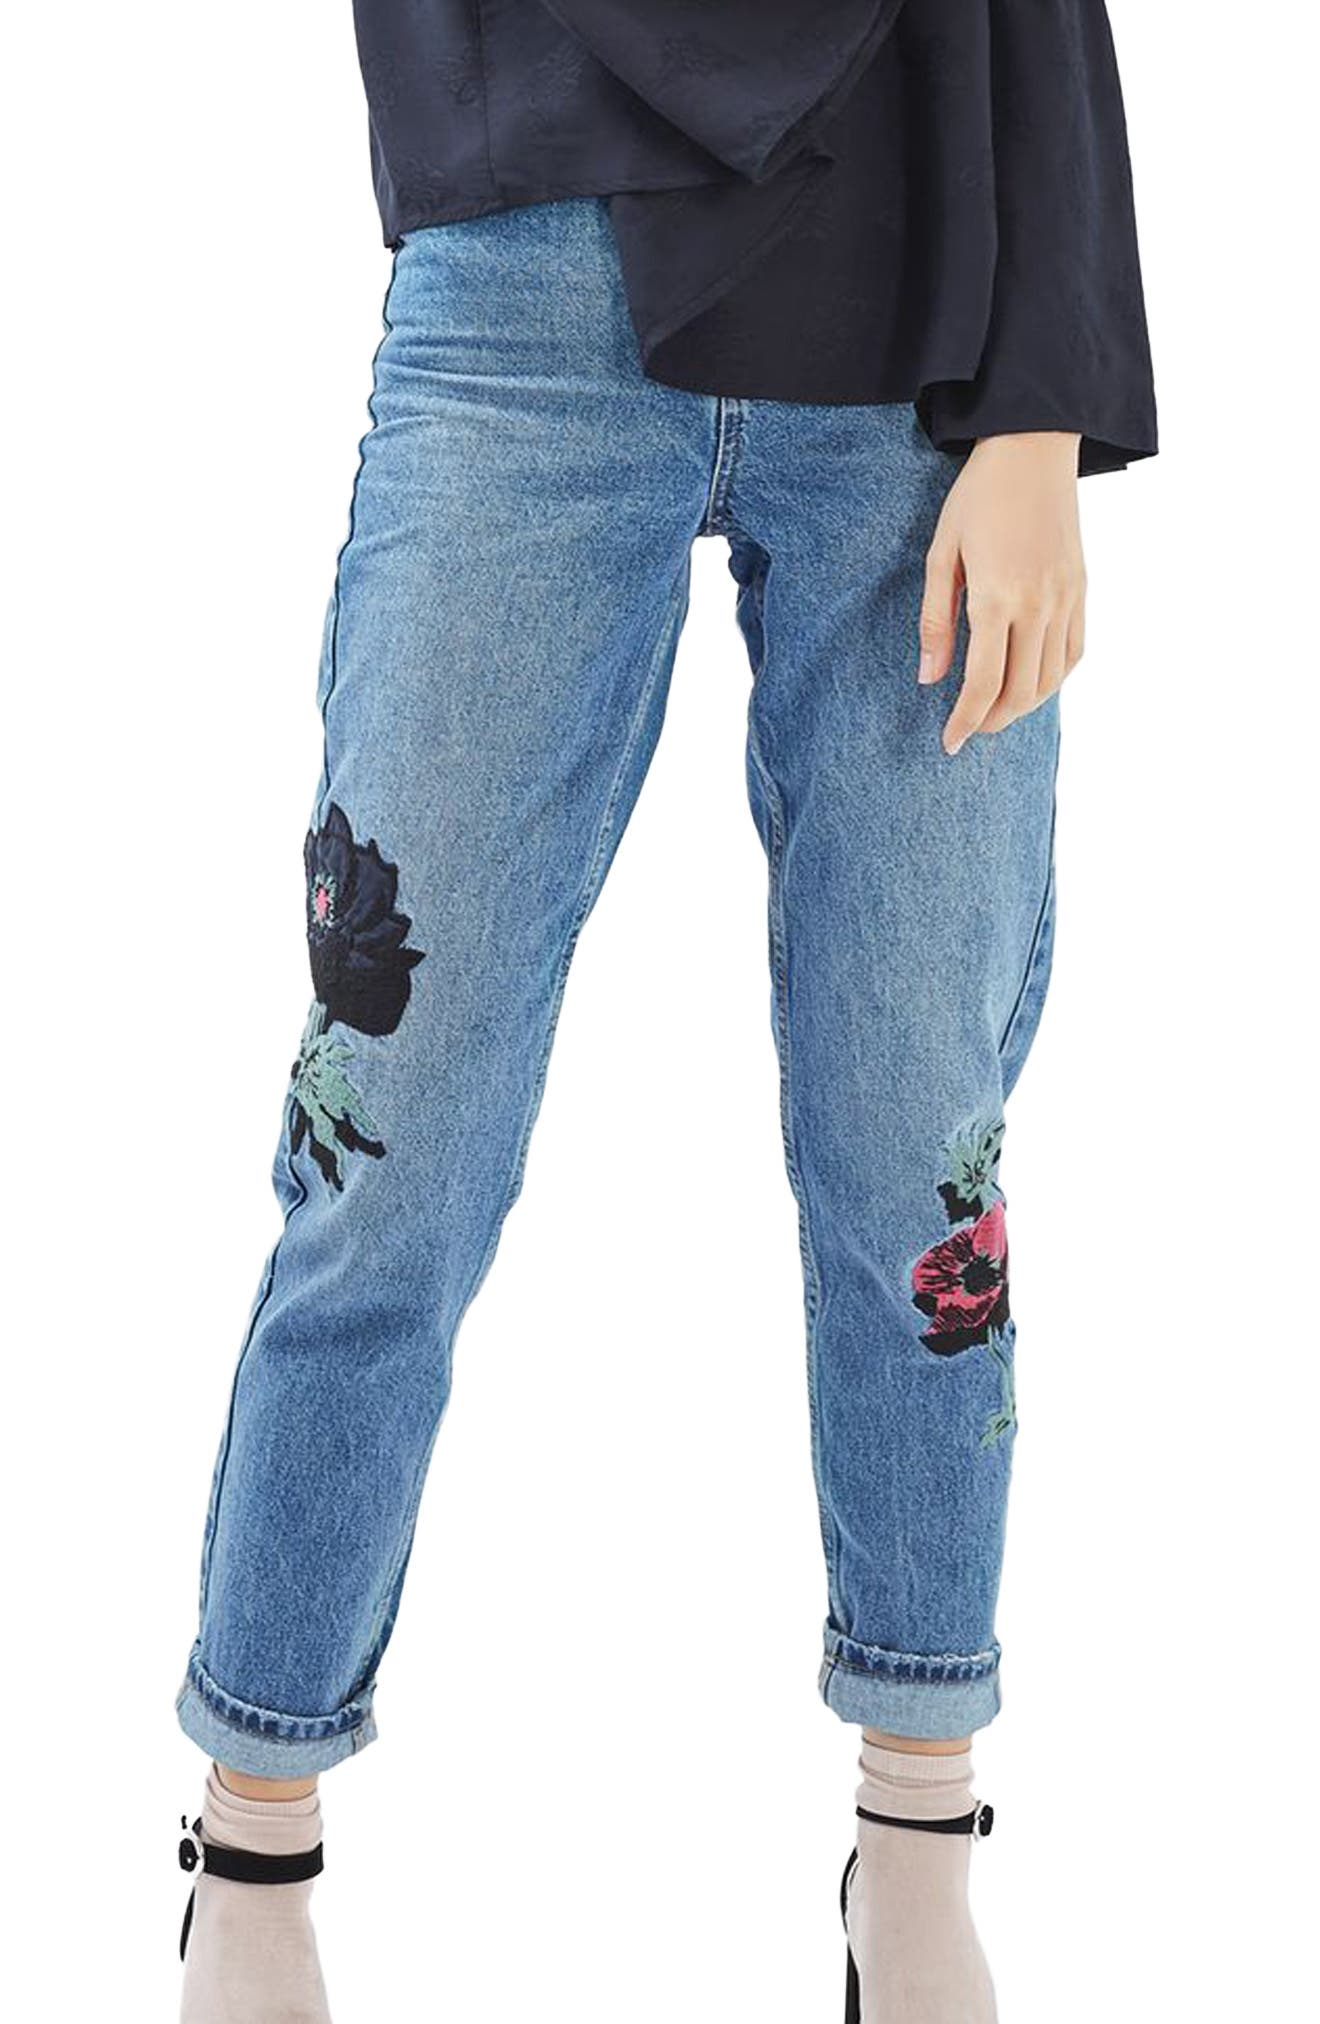 TOPSHOP, Floral Embroidered Mom Jeans, Main thumbnail 1, color, 400